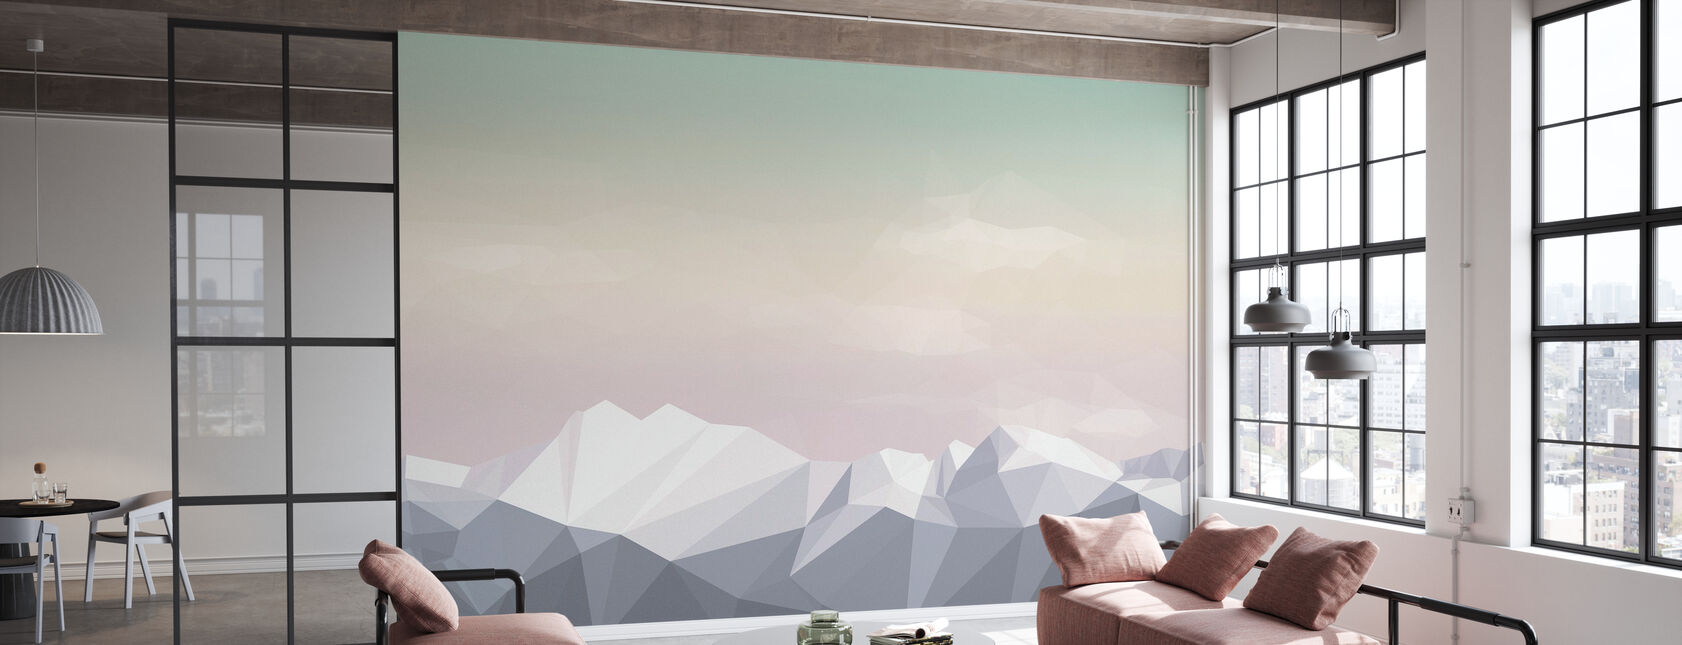 Mostly Mountains Icecream - Wallpaper - Office